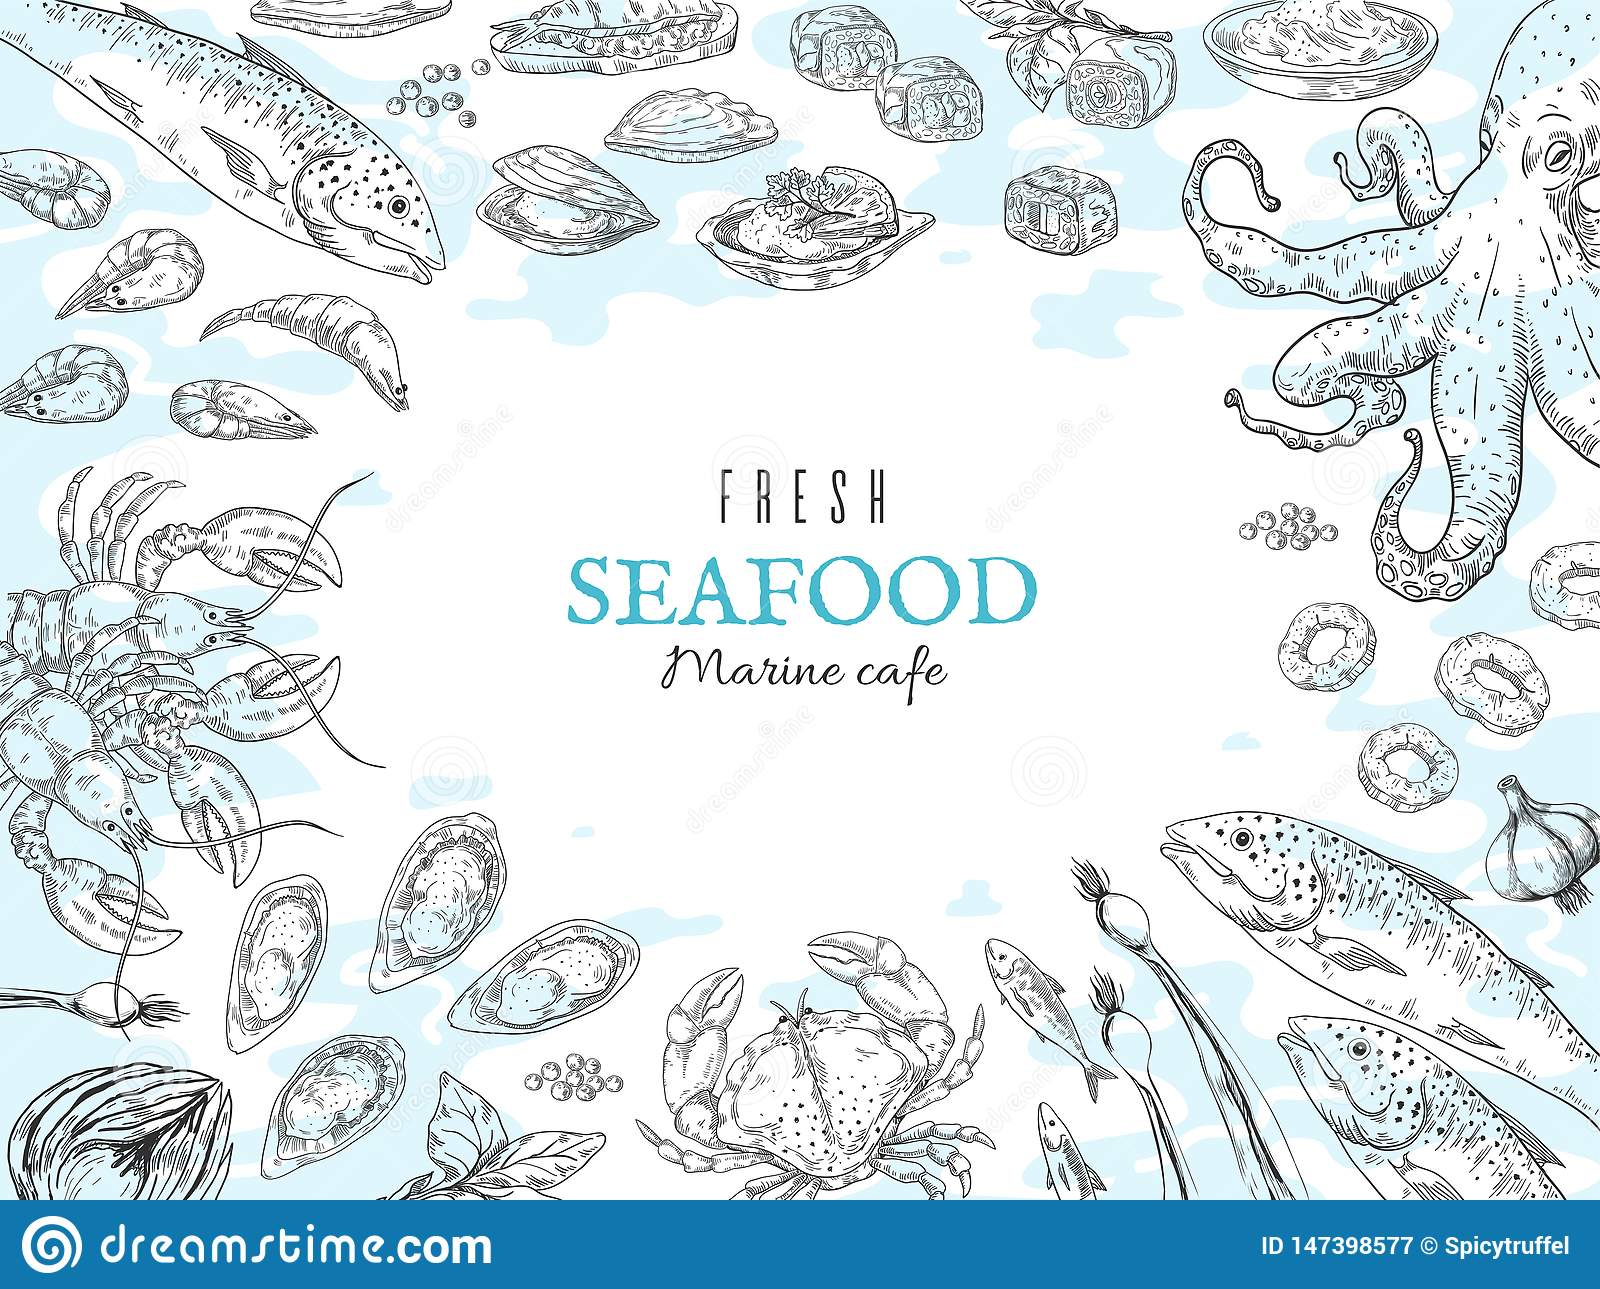 Hand drawn seafood background. Fish restaurant poster, gourmet dinner table, marine rustic poster. Vector ocean food